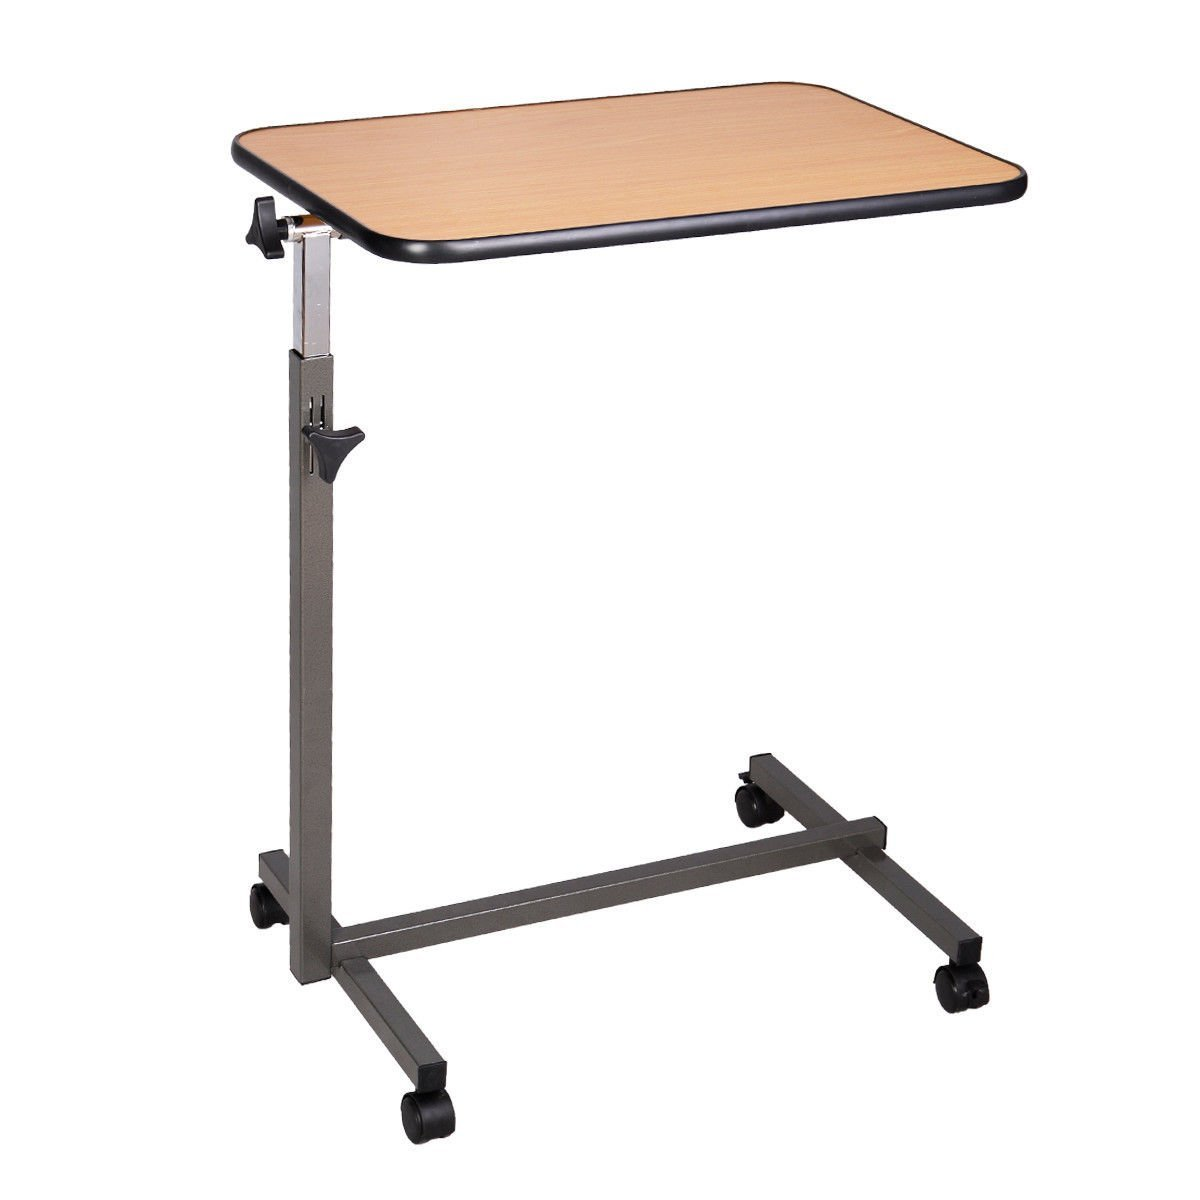 ... Laptop Food Tray Overbed Table Rolling Desk Hospital Over Bed With  Tilting Top